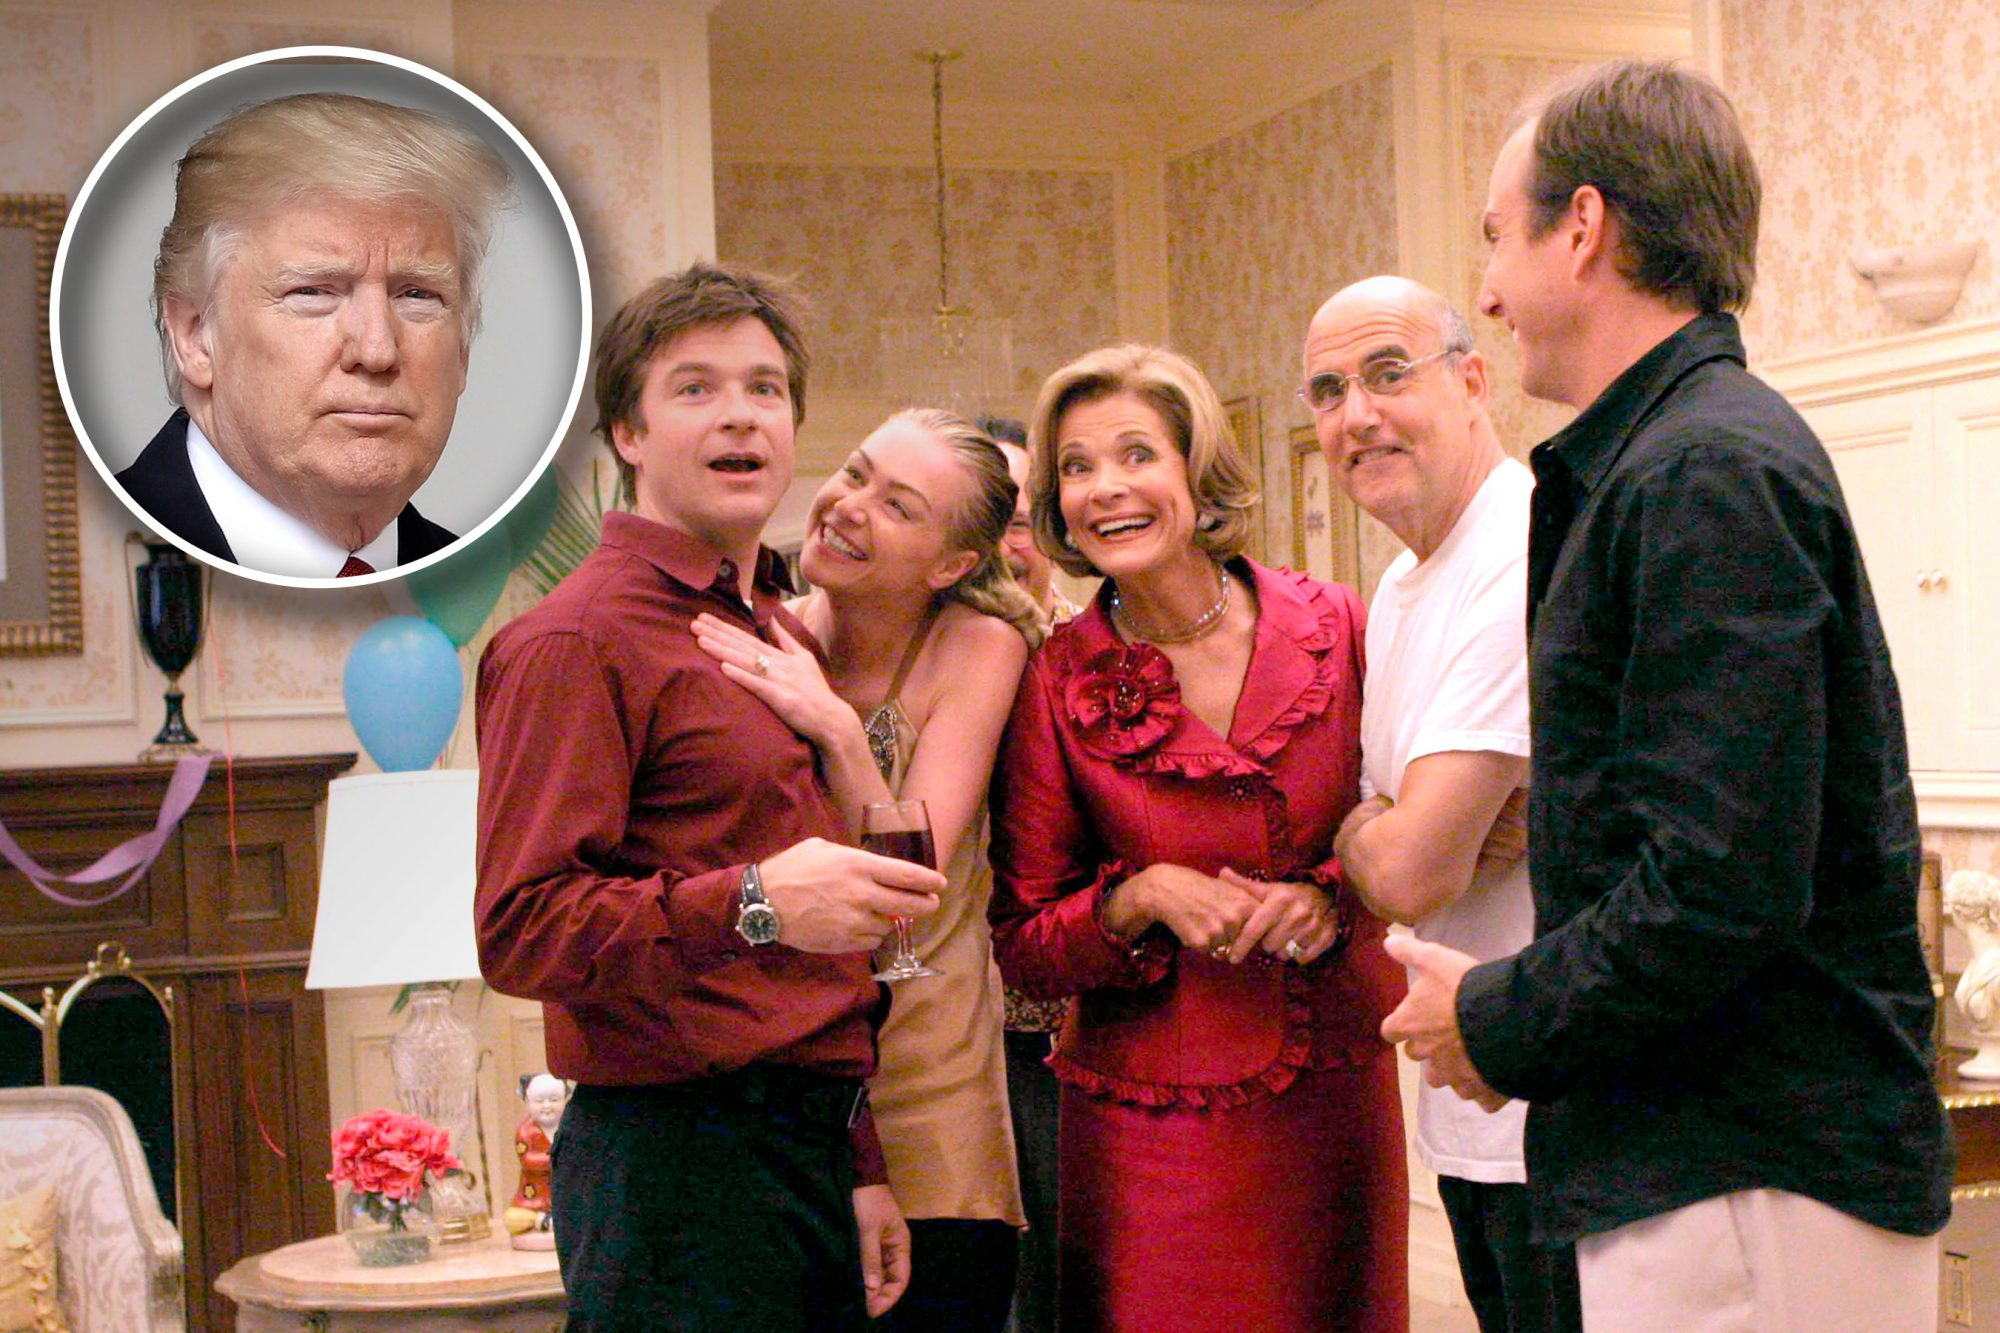 Donald Trump and Arrested Development